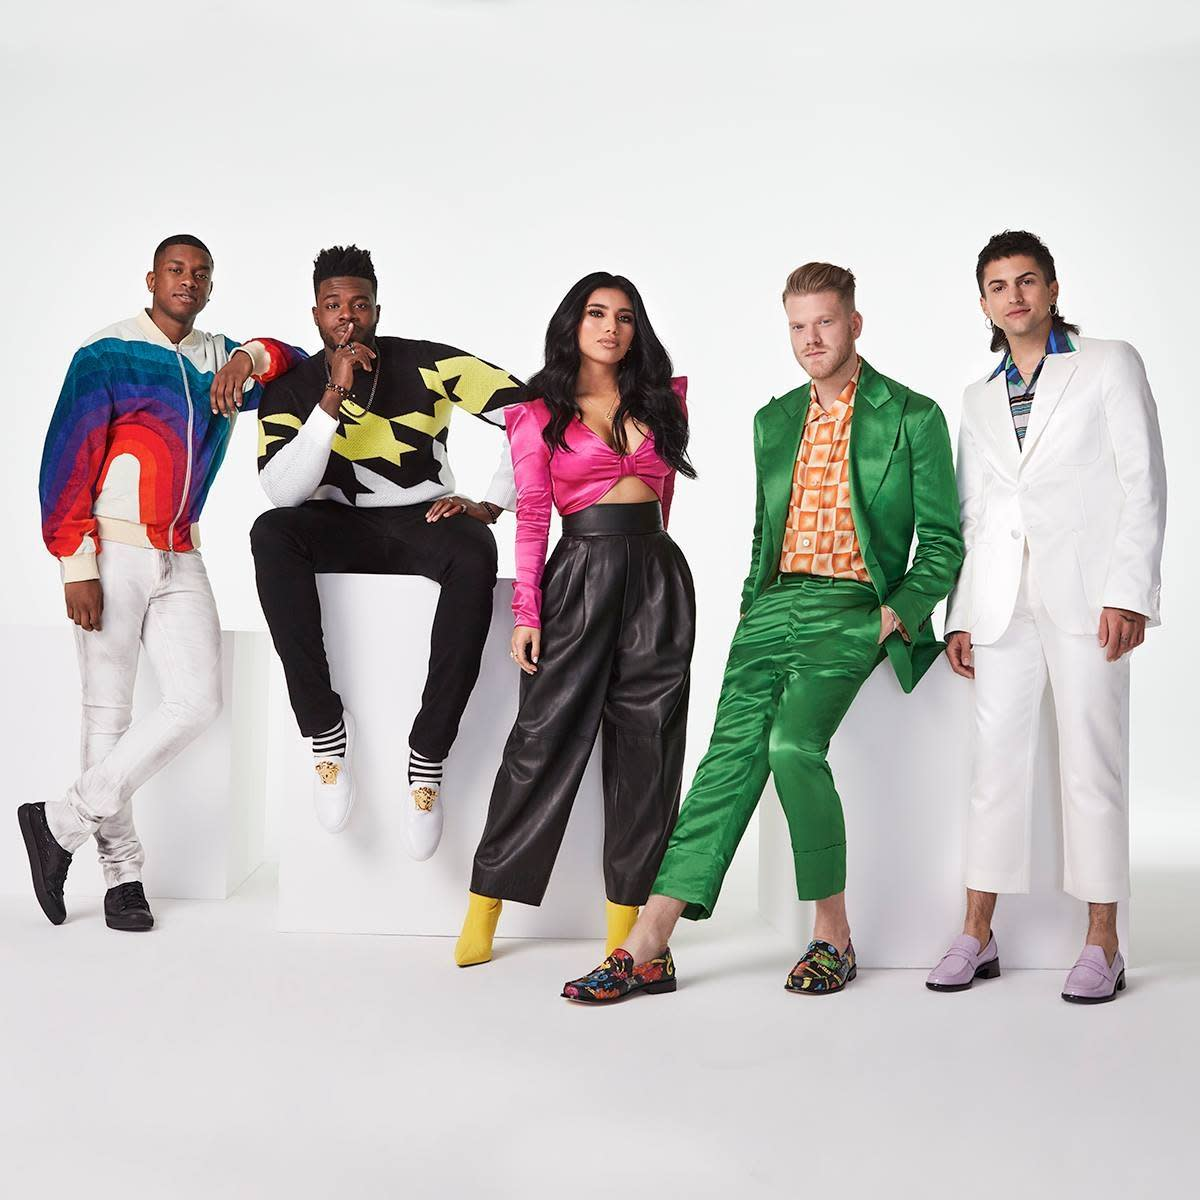 A cappella group Pentatonix coming to Manila in February 2020